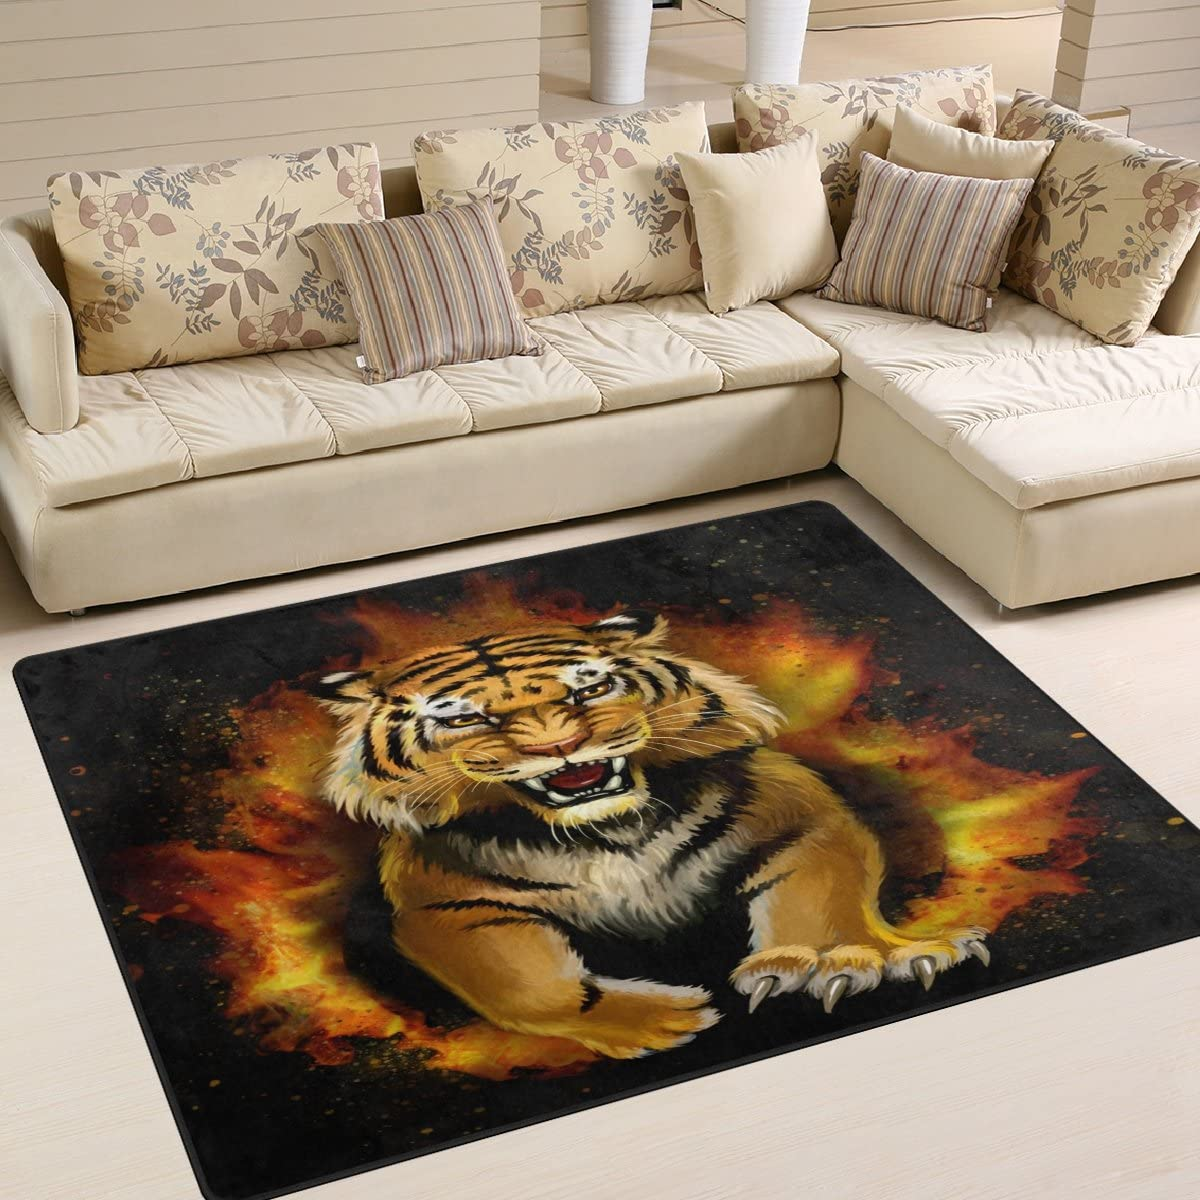 ALAZA Fire Tiger Area Rug Rugs Max 80% OFF for 5' Bedroom x New Free Shipping 7' Room Living